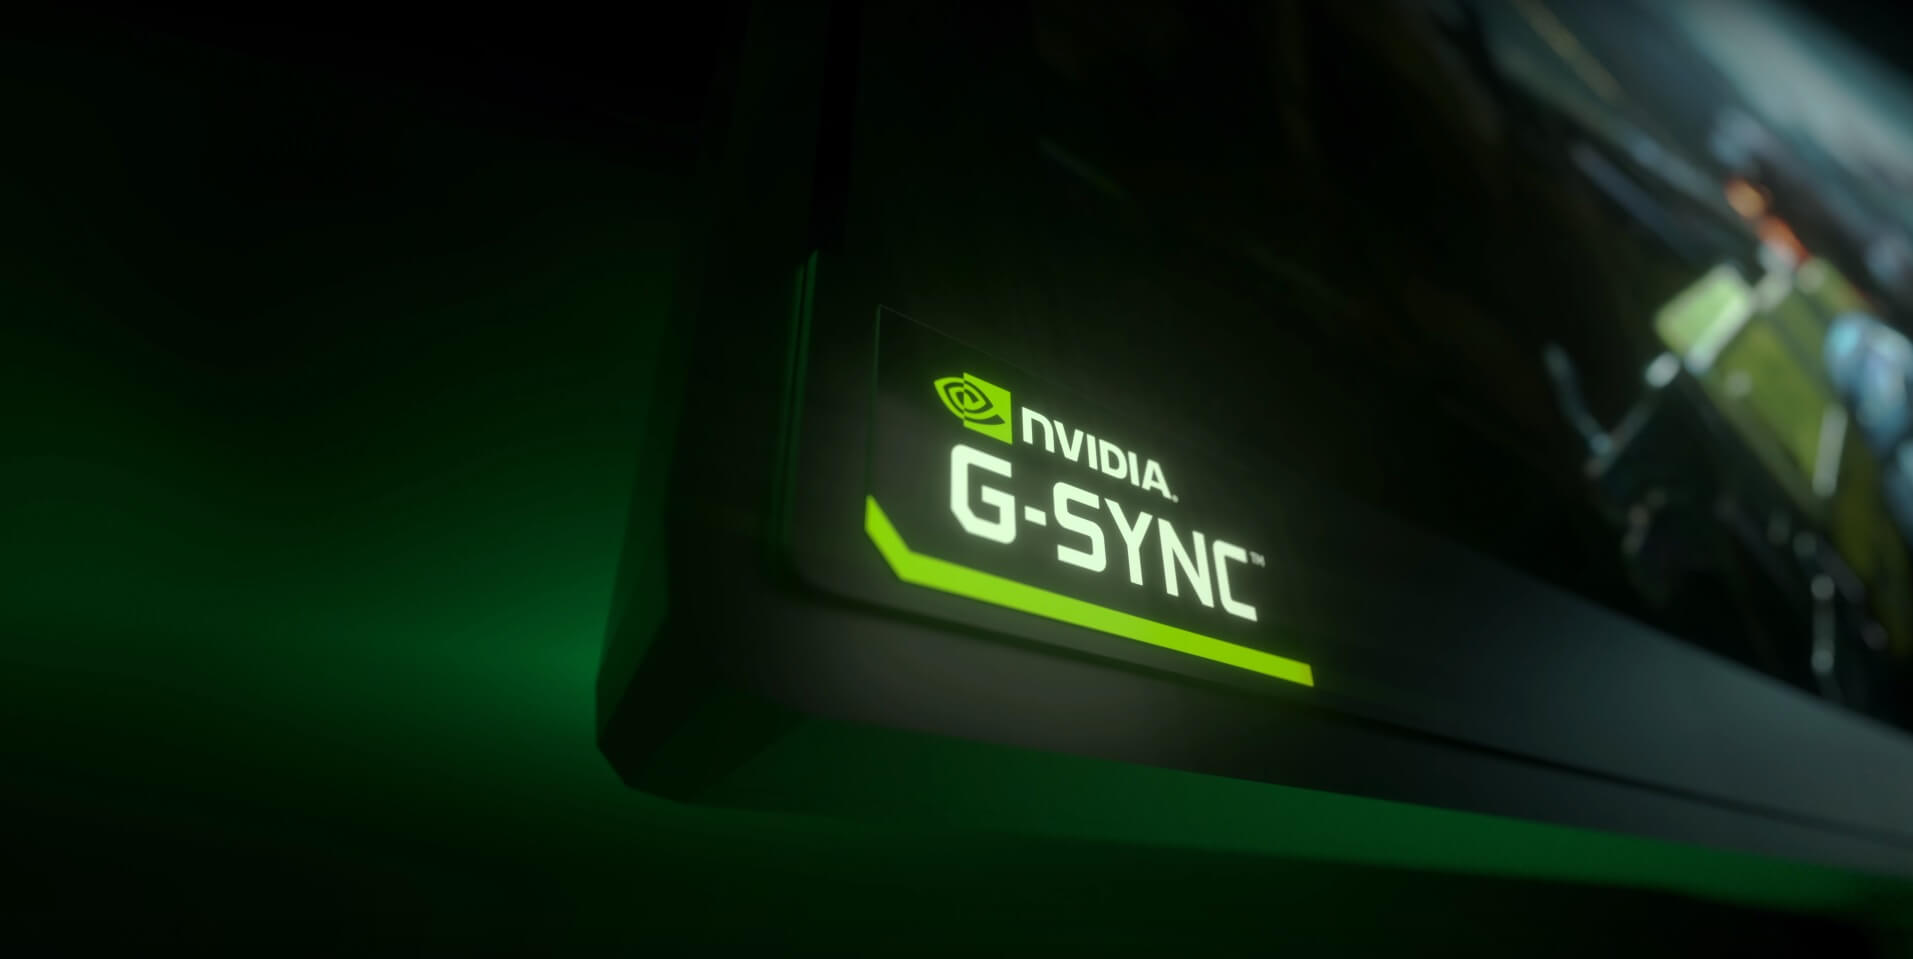 How to enable G-Sync Compatible on a Freesync monitor